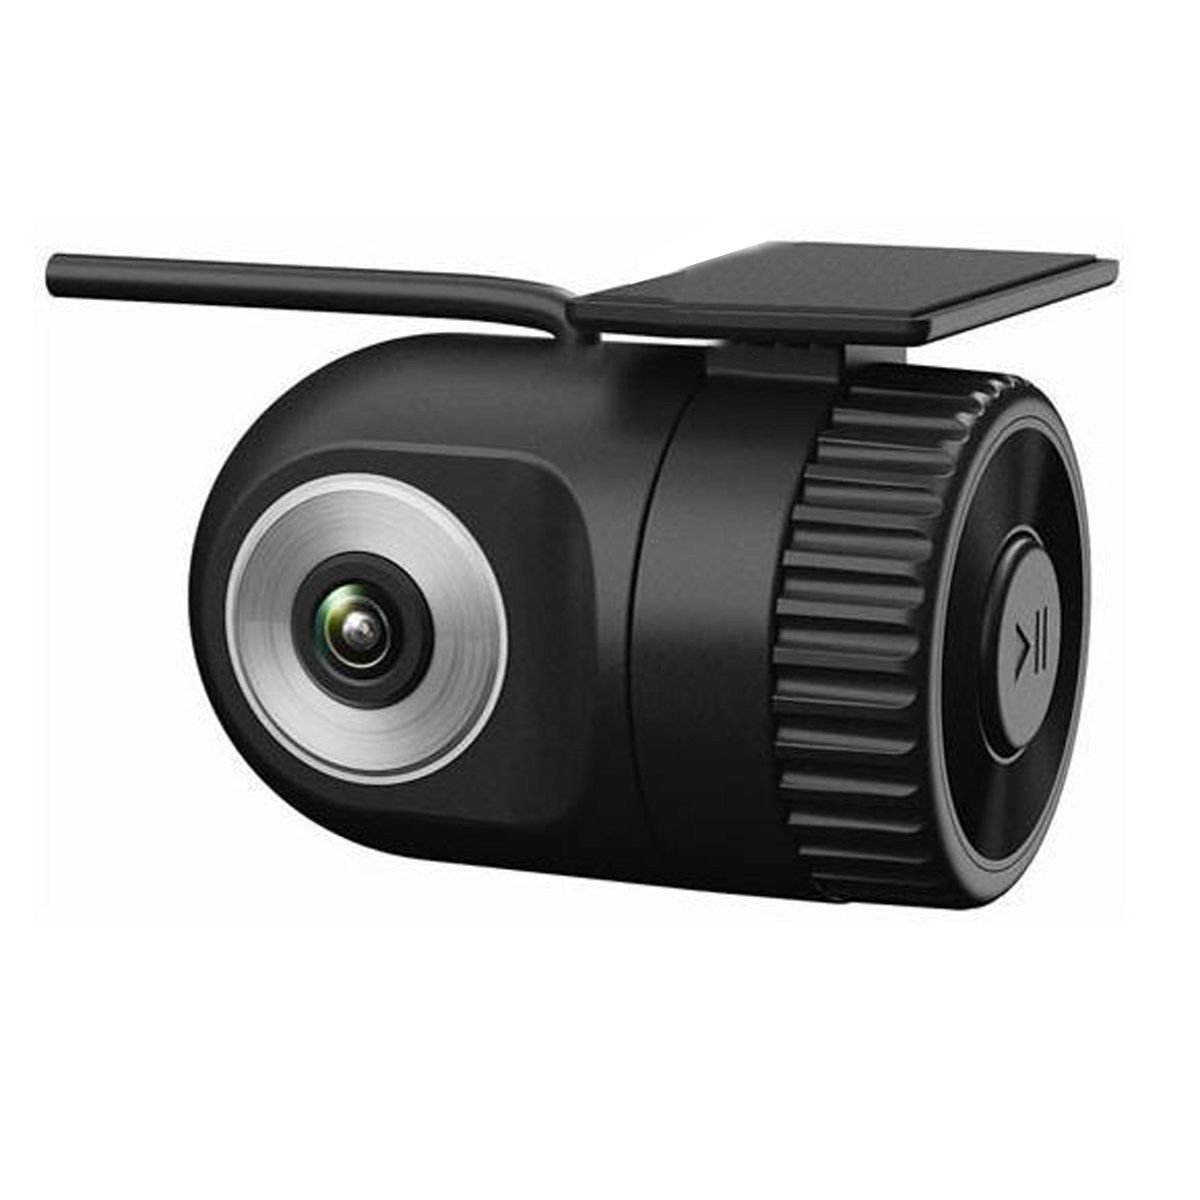 VALETY MINI CAR Video Bullet Camcorder Detector HD 720P 30FPS With 140 Degree Wide Angle Lens DASH CAM